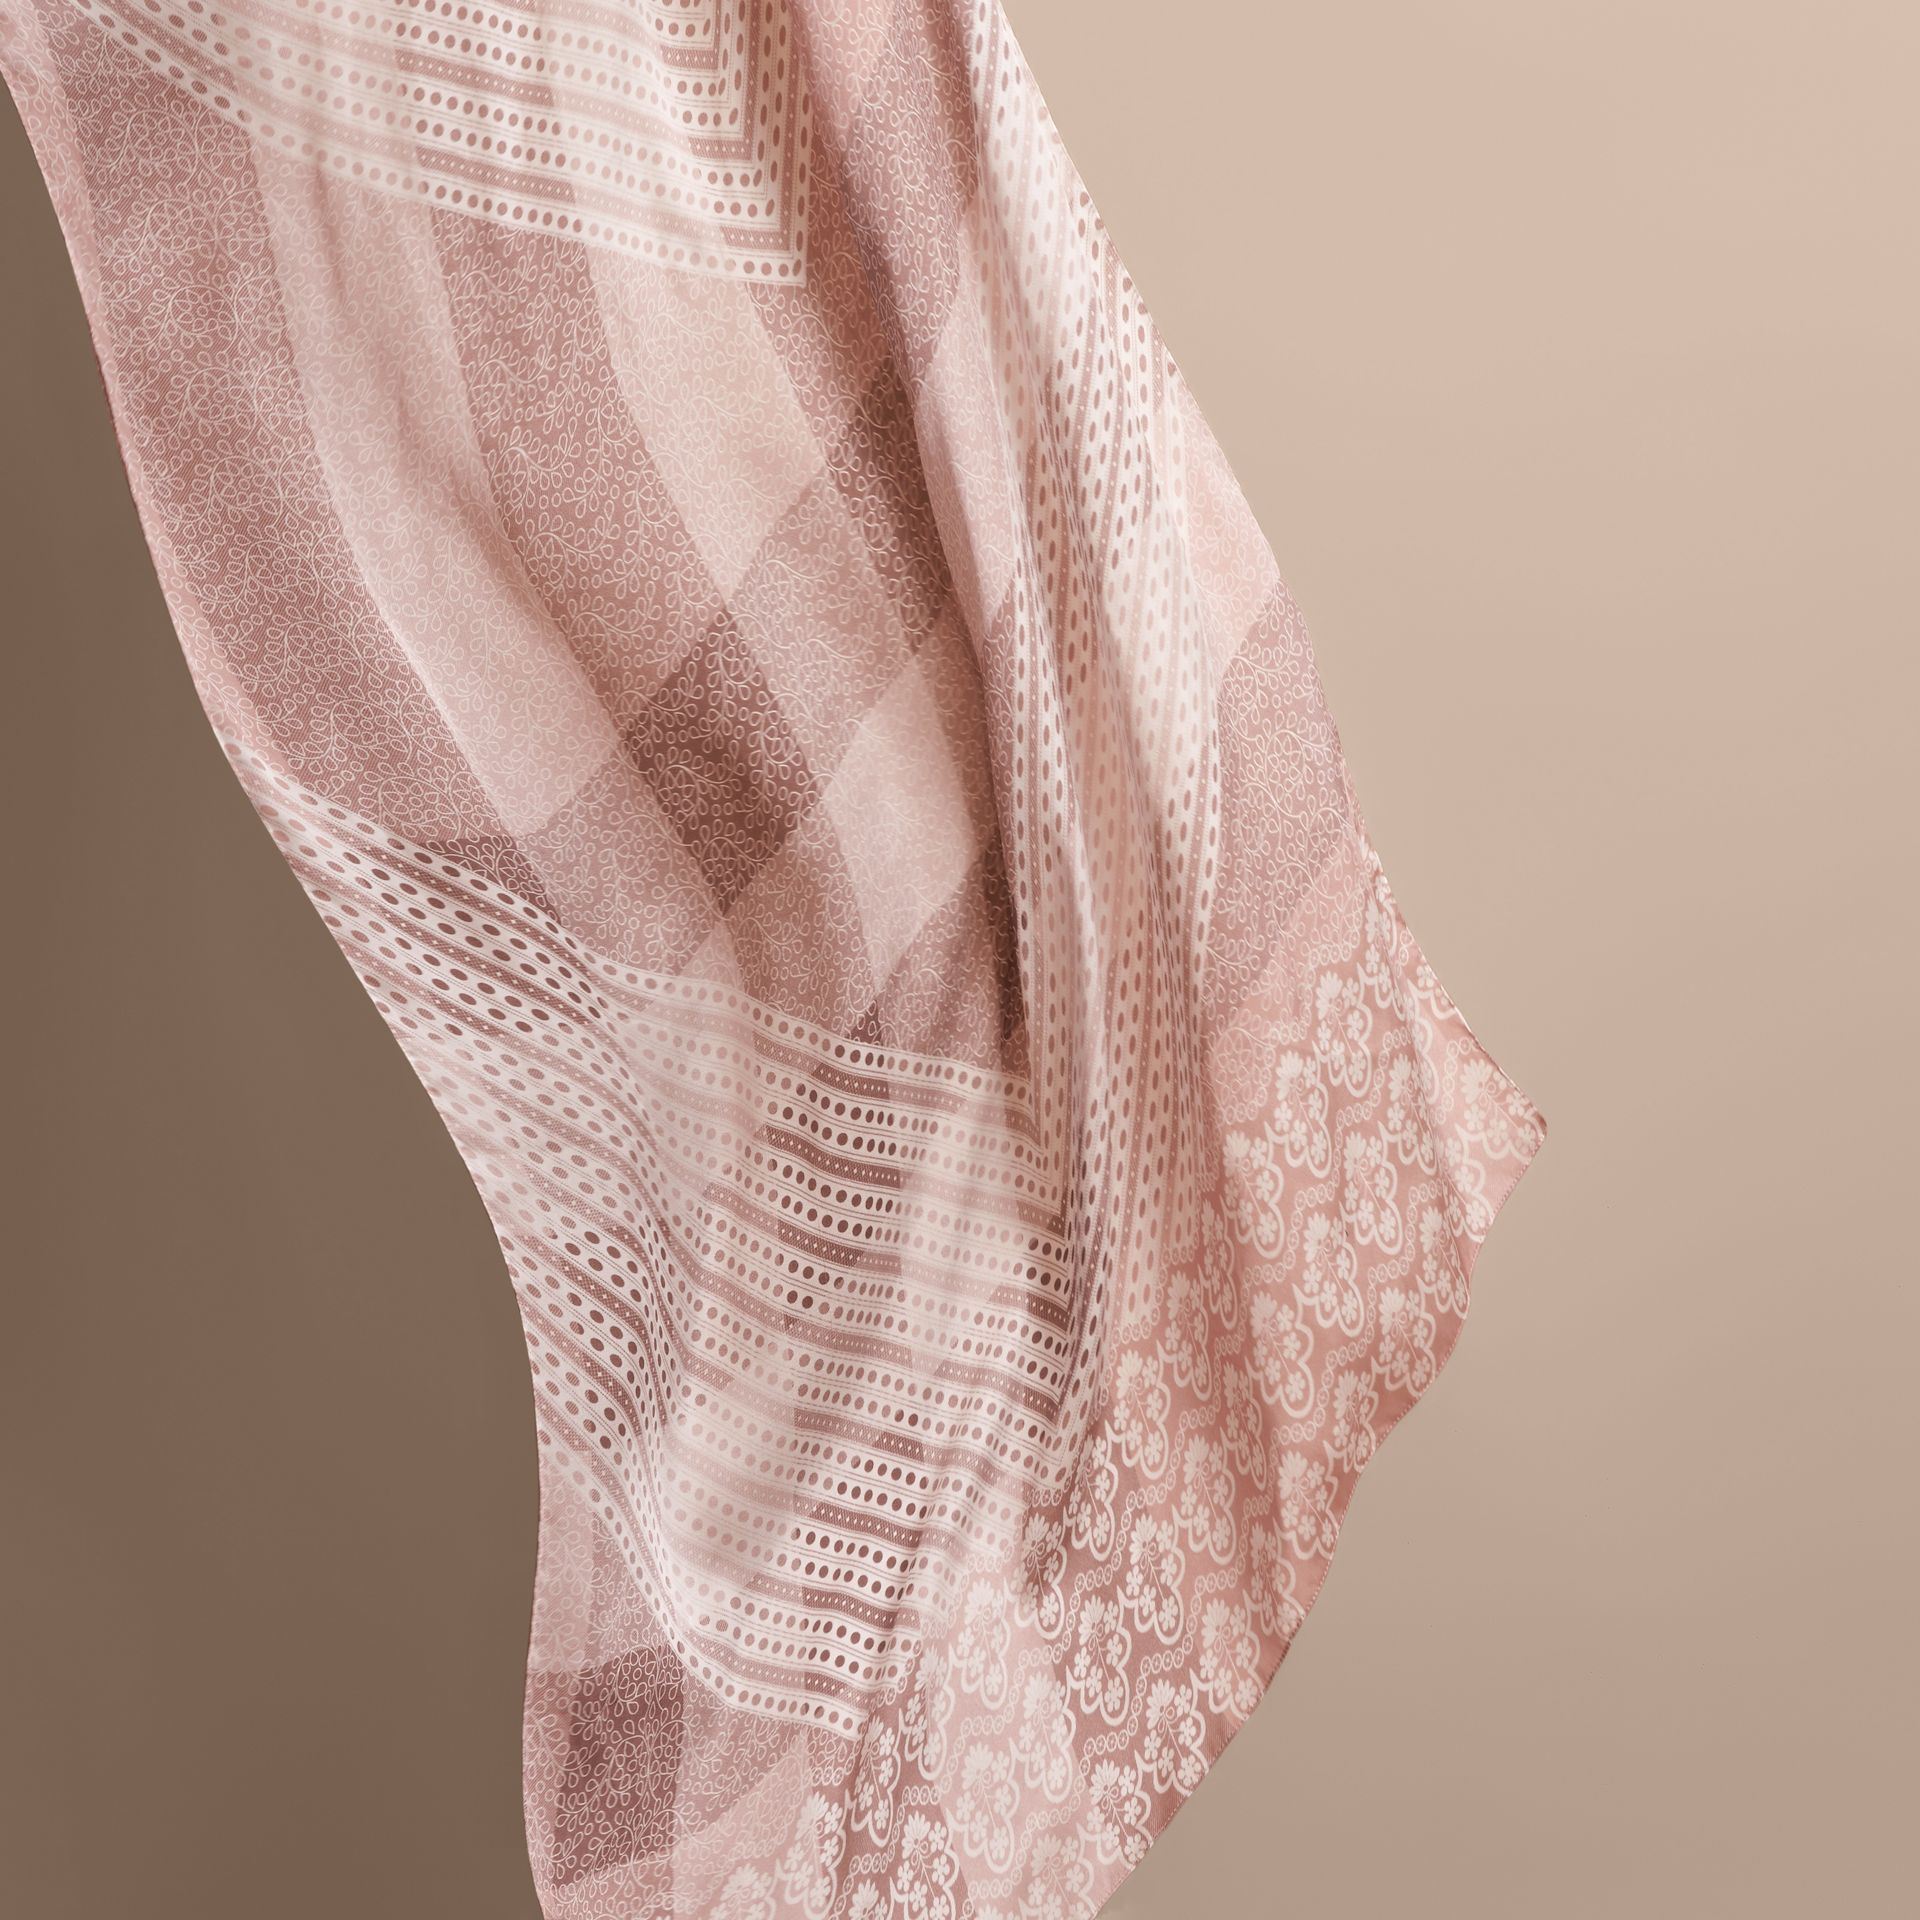 Floral Lace and Check Print Silk Scarf in Ash Rose - Women | Burberry - gallery image 4